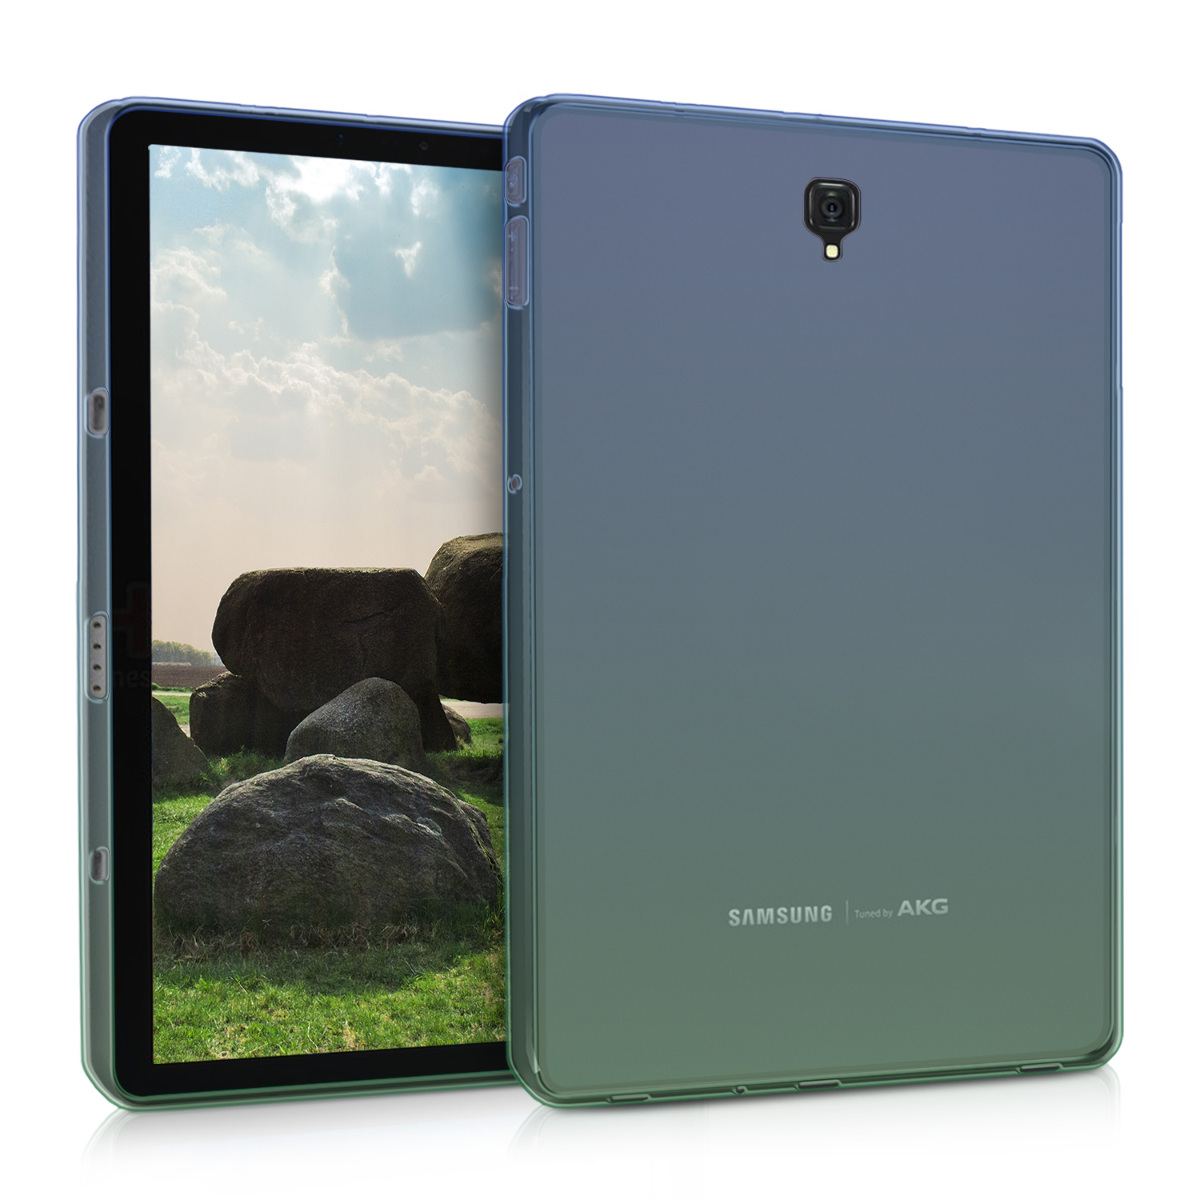 KW Θήκη Σιλικόνης Samsung Galaxy Tab S4 10.5 - Soft Flexible Shock Absorbent Protective Cover - Blue / Green / Transparent (45999.02)